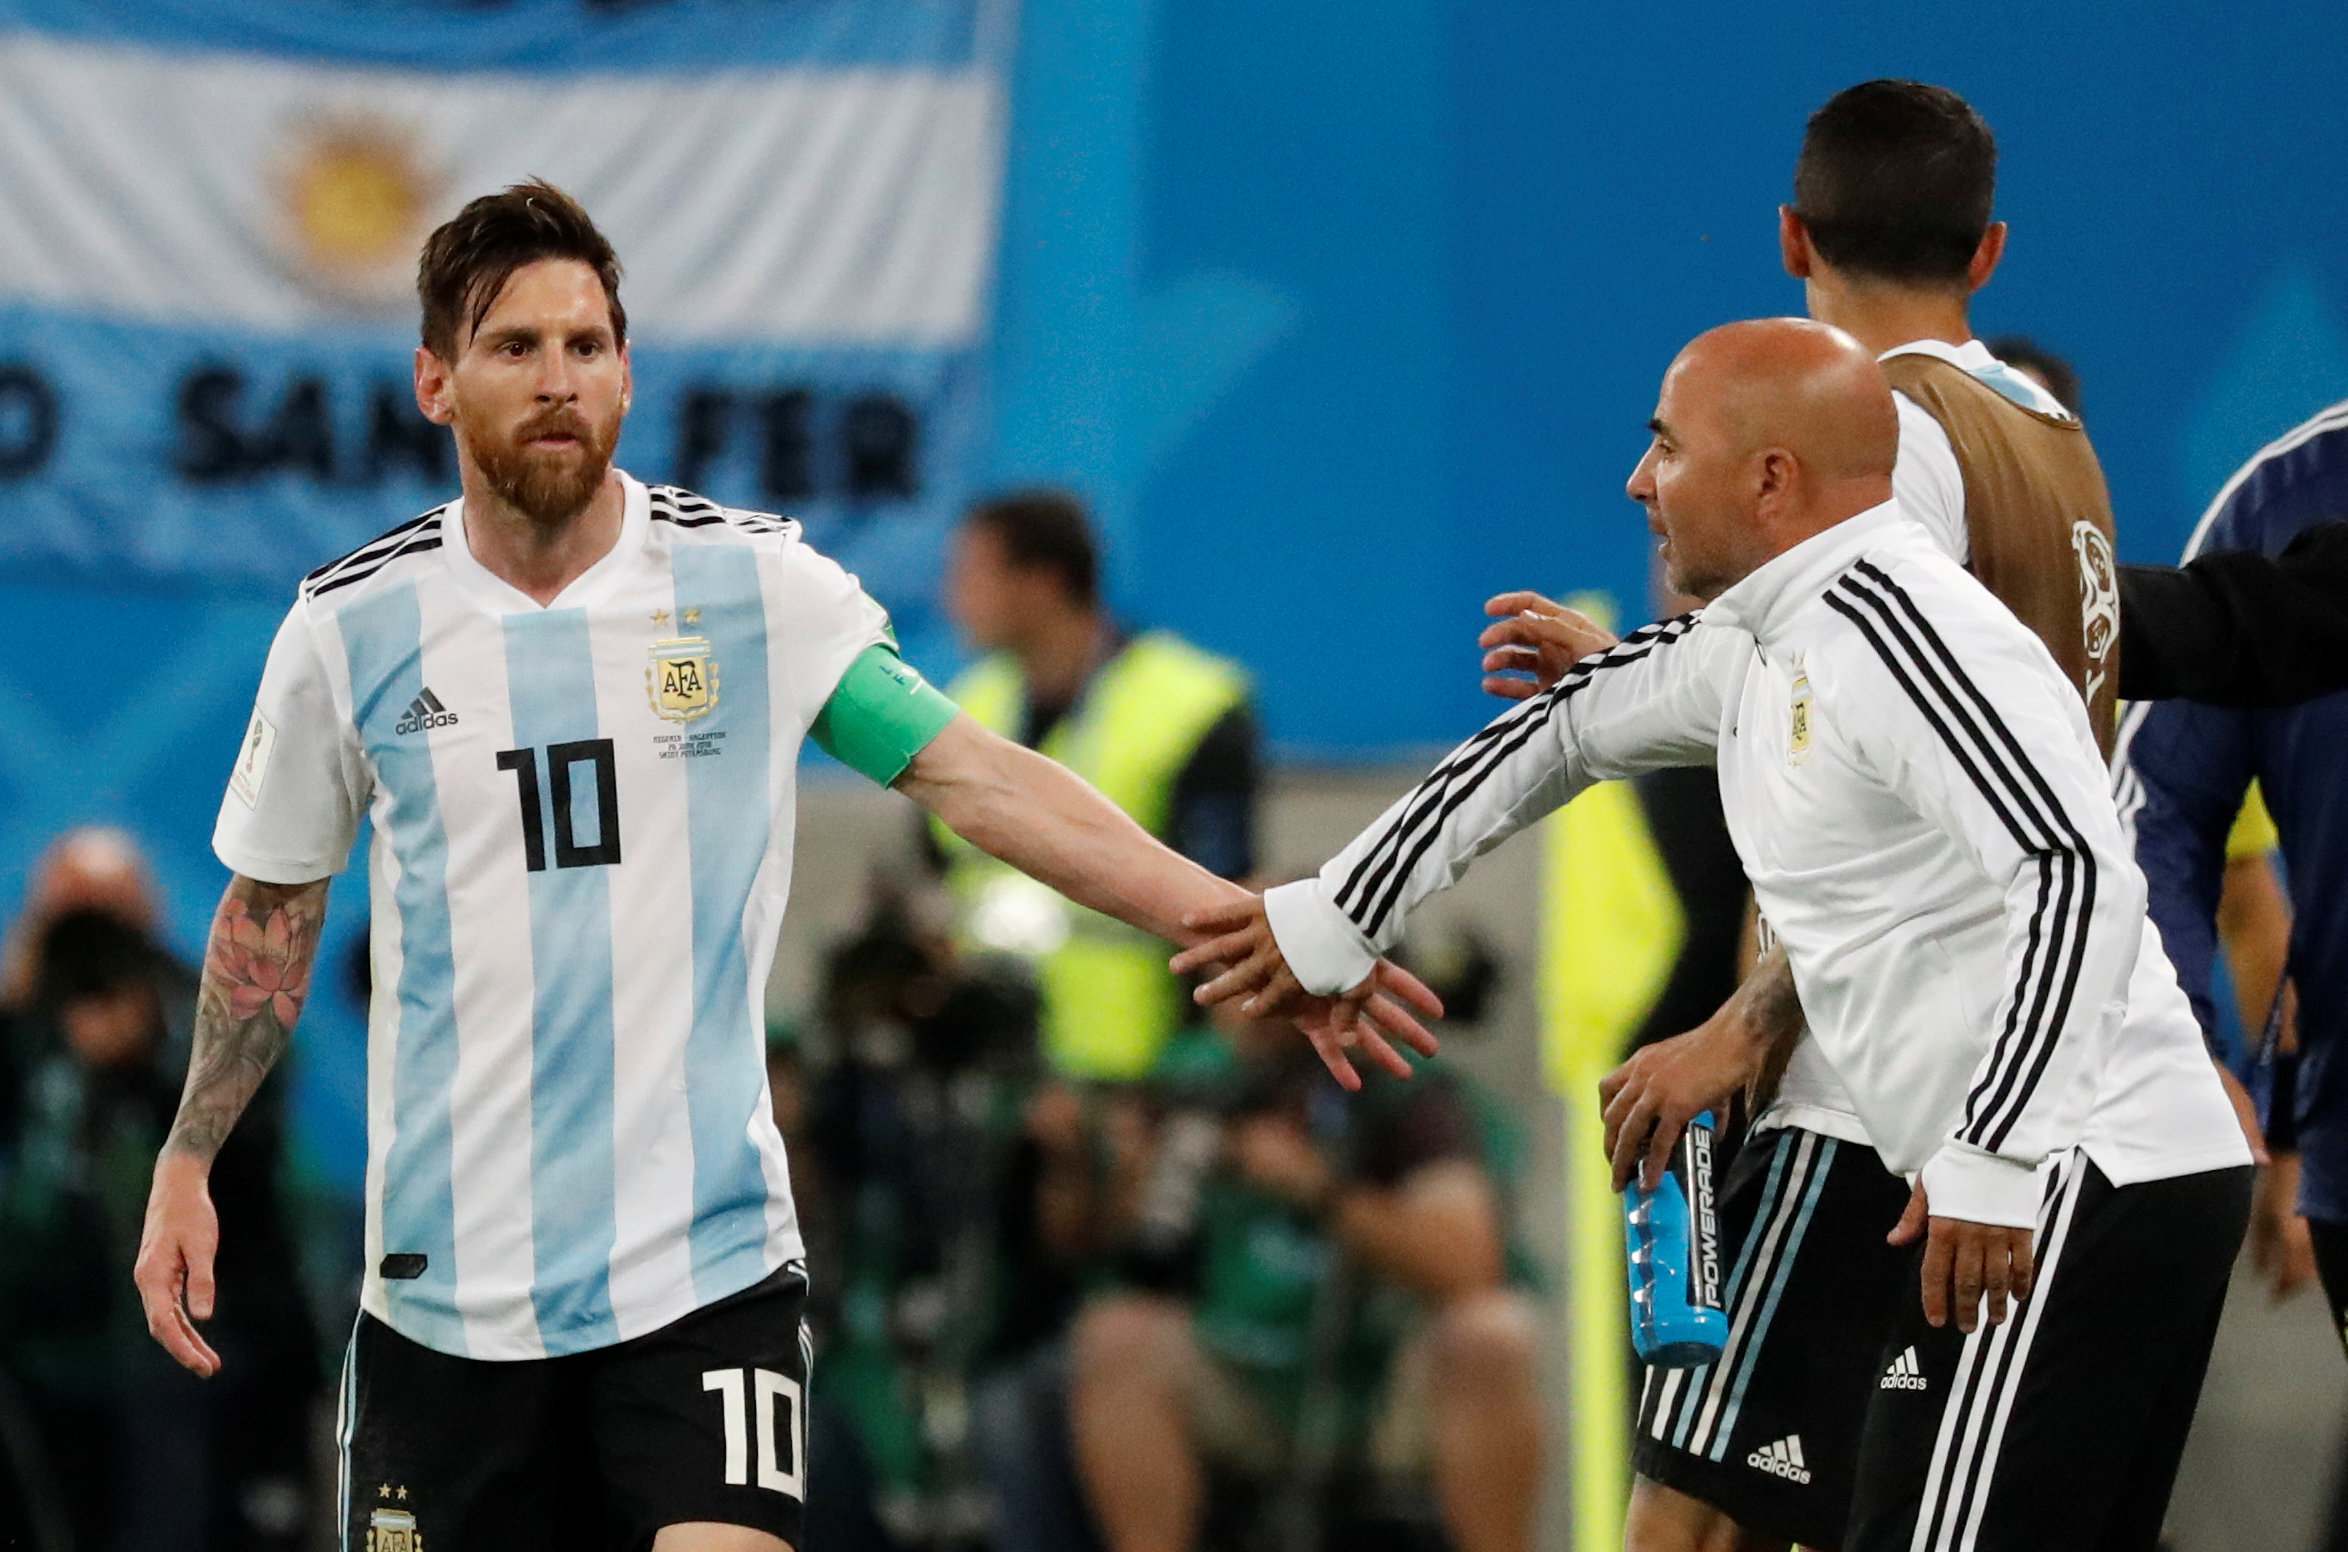 2018-06-26T195607Z_381545855_RC193337F220_RTRMADP_3_SOCCER-WORLDCUP-NGA-ARG